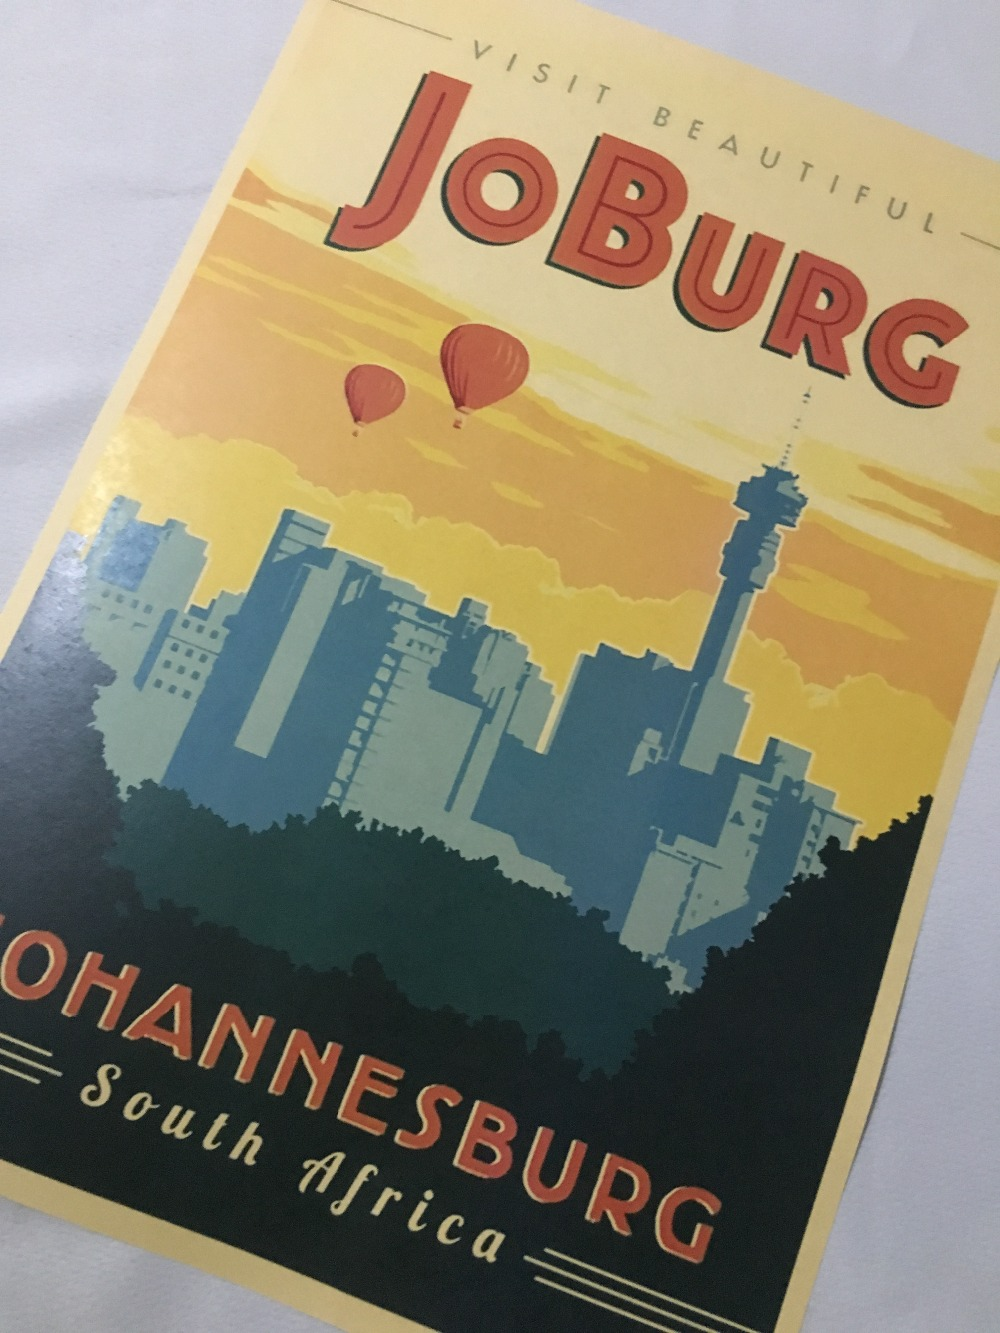 Joburg African Propaganda Vintage Travel Poster Retro Decorative Diy